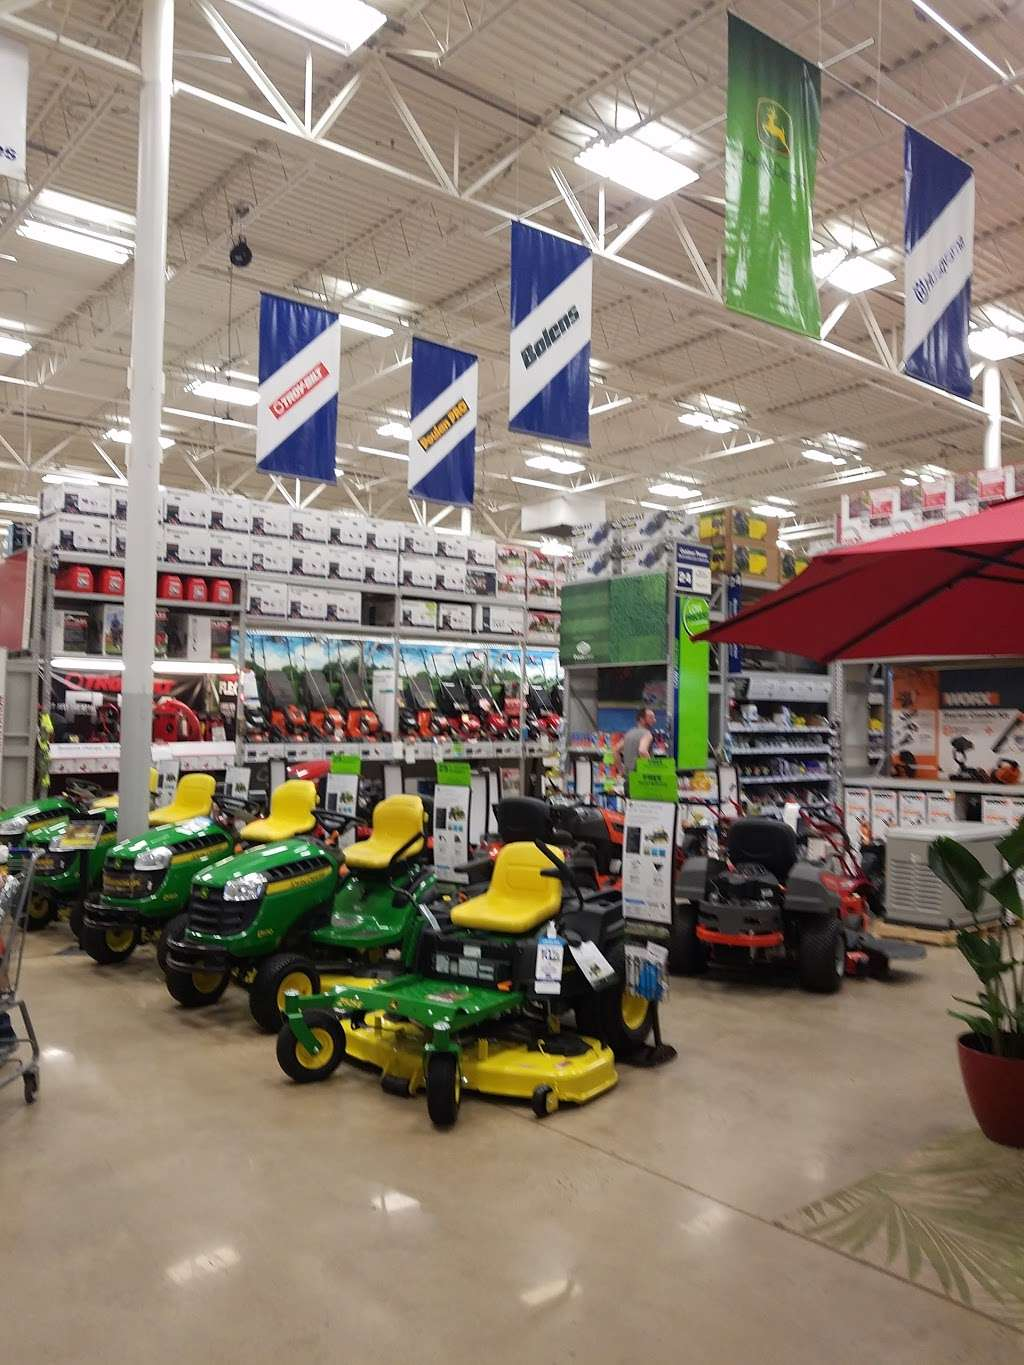 Lowes Home Improvement - hardware store  | Photo 5 of 10 | Address: 1500 Wesel Blvd, Hagerstown, MD 21740, USA | Phone: (301) 766-7200